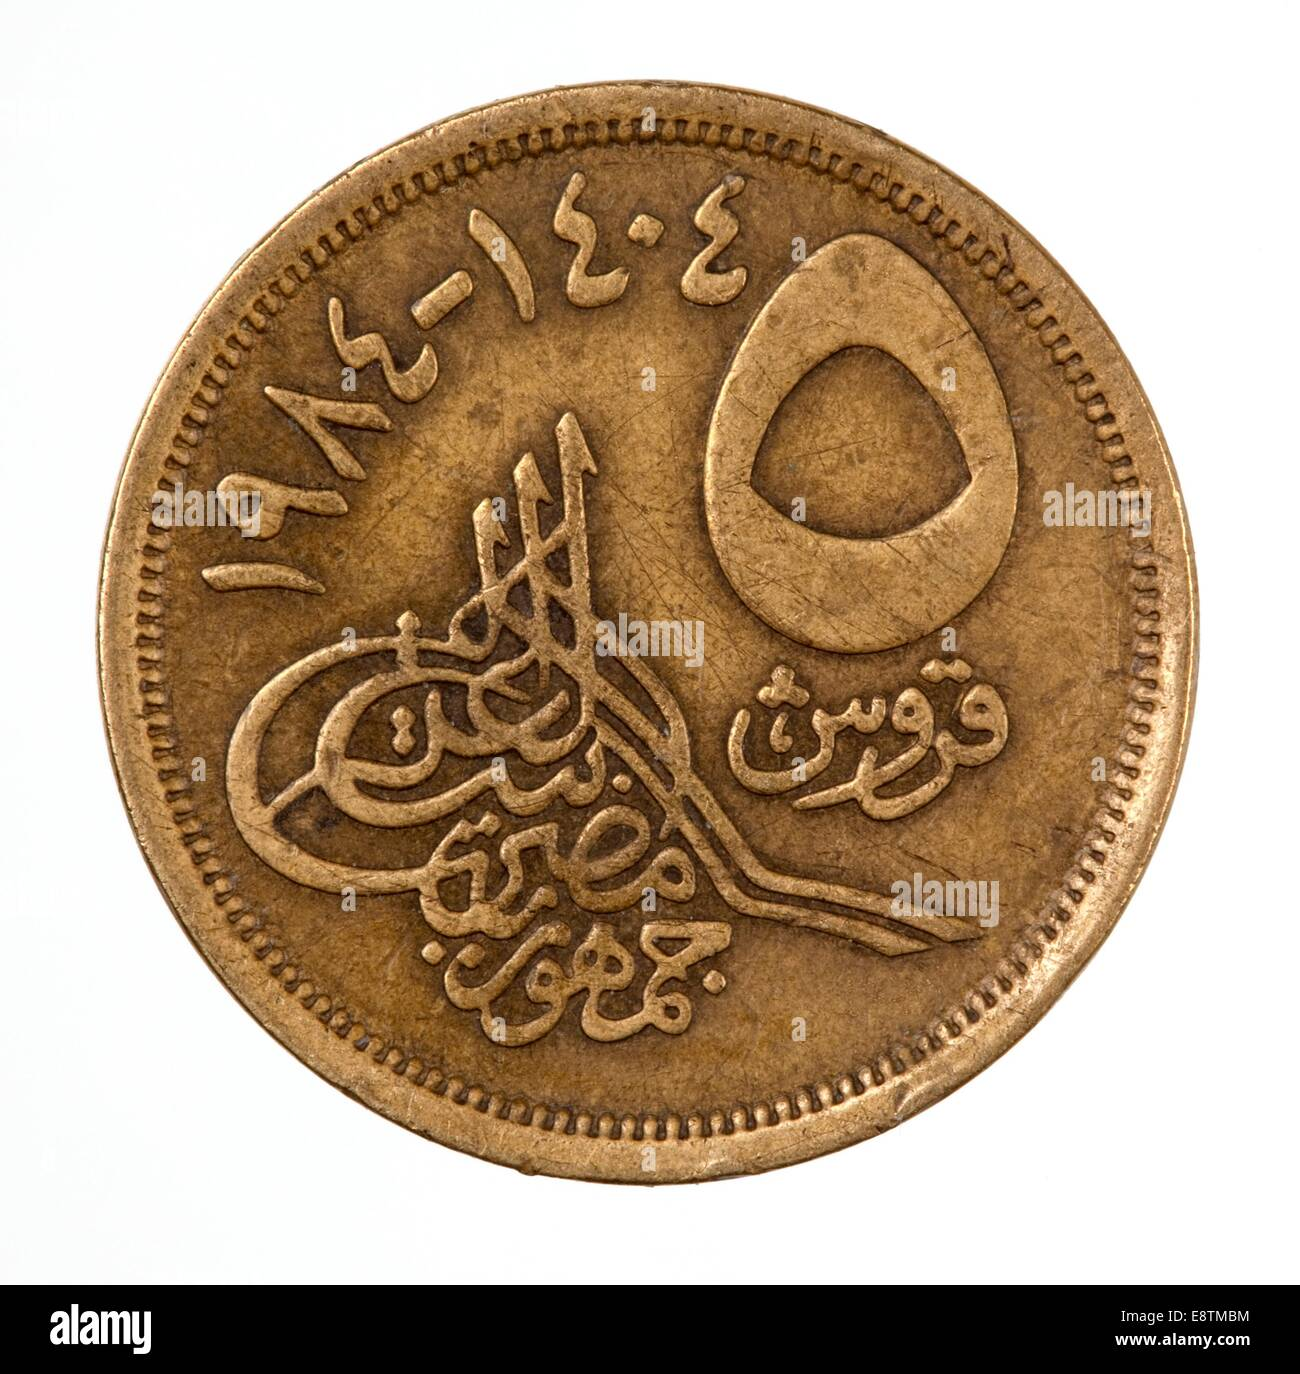 The reverse side of a 1984 Egyptian 5 Qirsh or Piastres coin - Stock Image